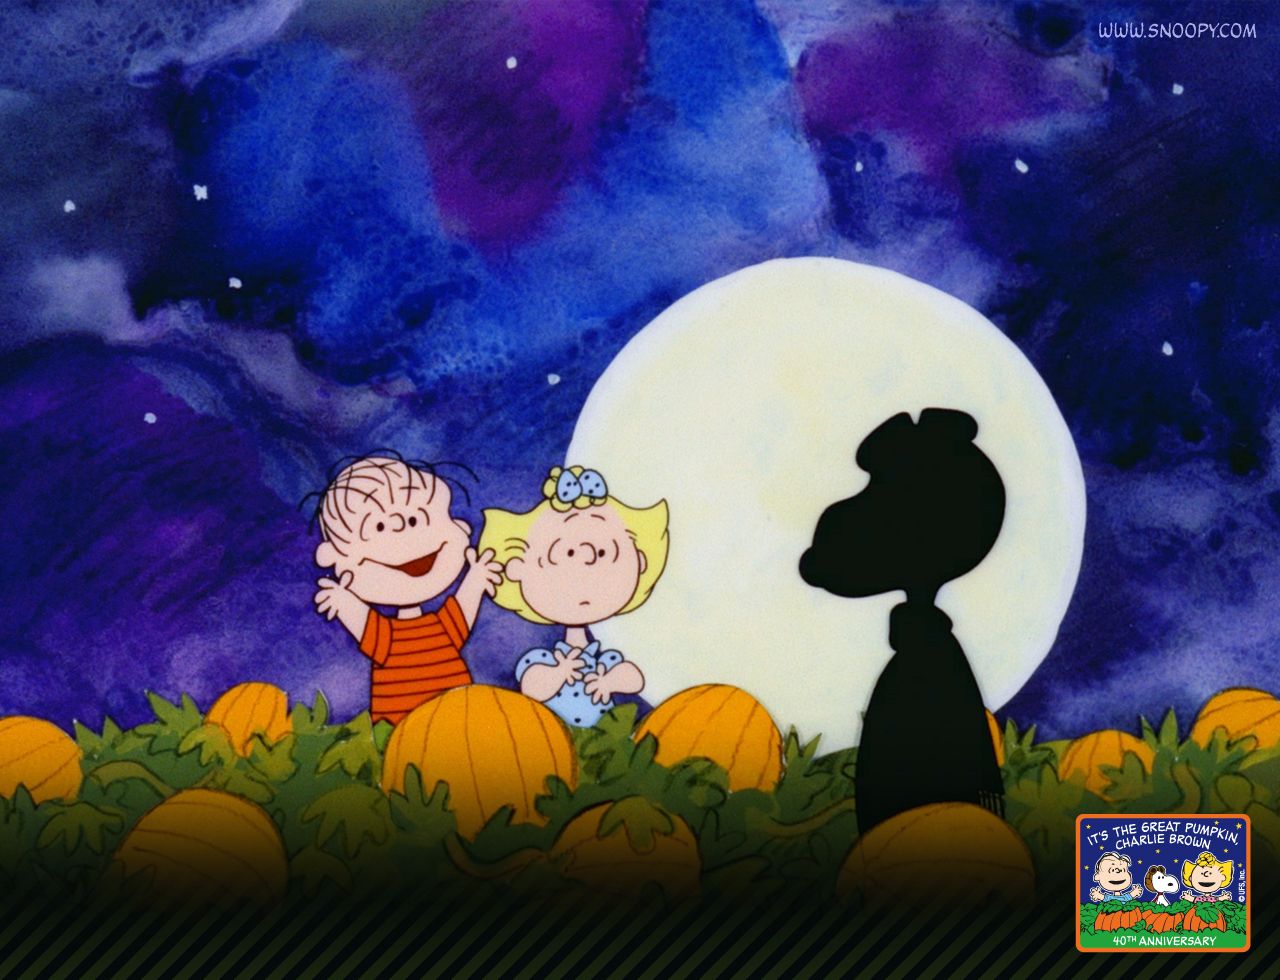 Peanuts Halloween Wallpaper3